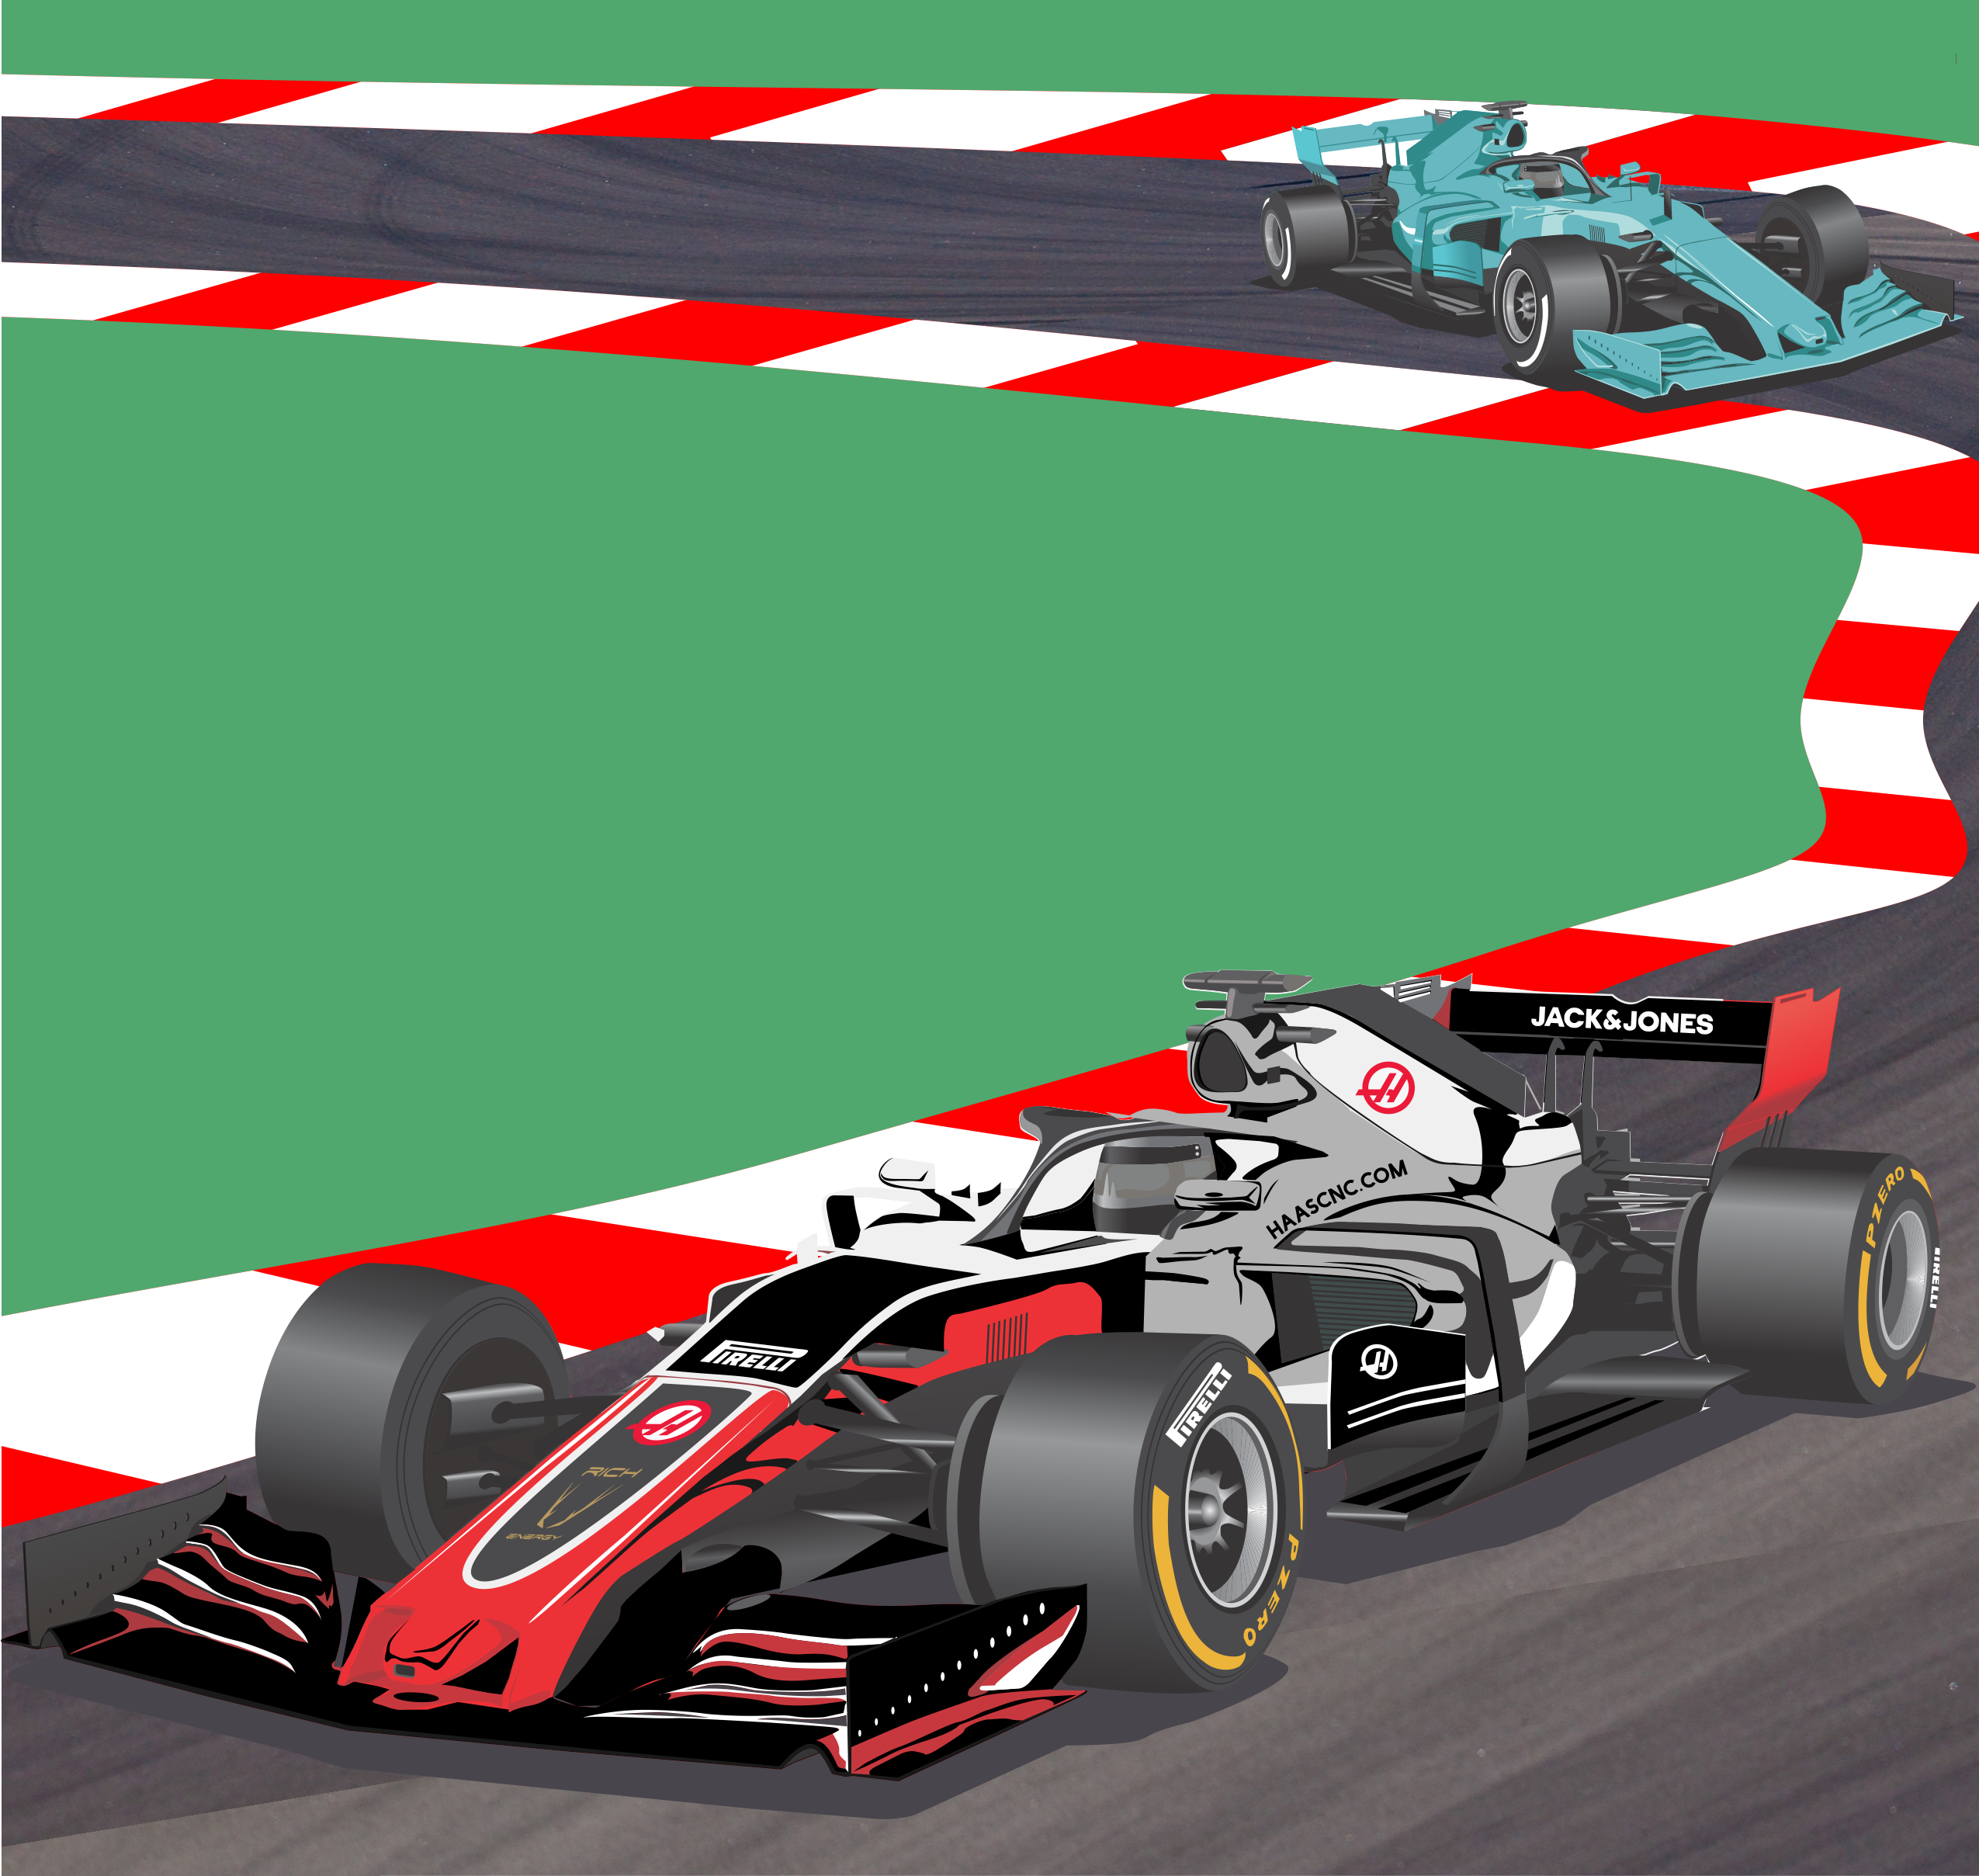 Haas F1 The Fastest Start Up You Ve Never Heard Of Ivey Business Review